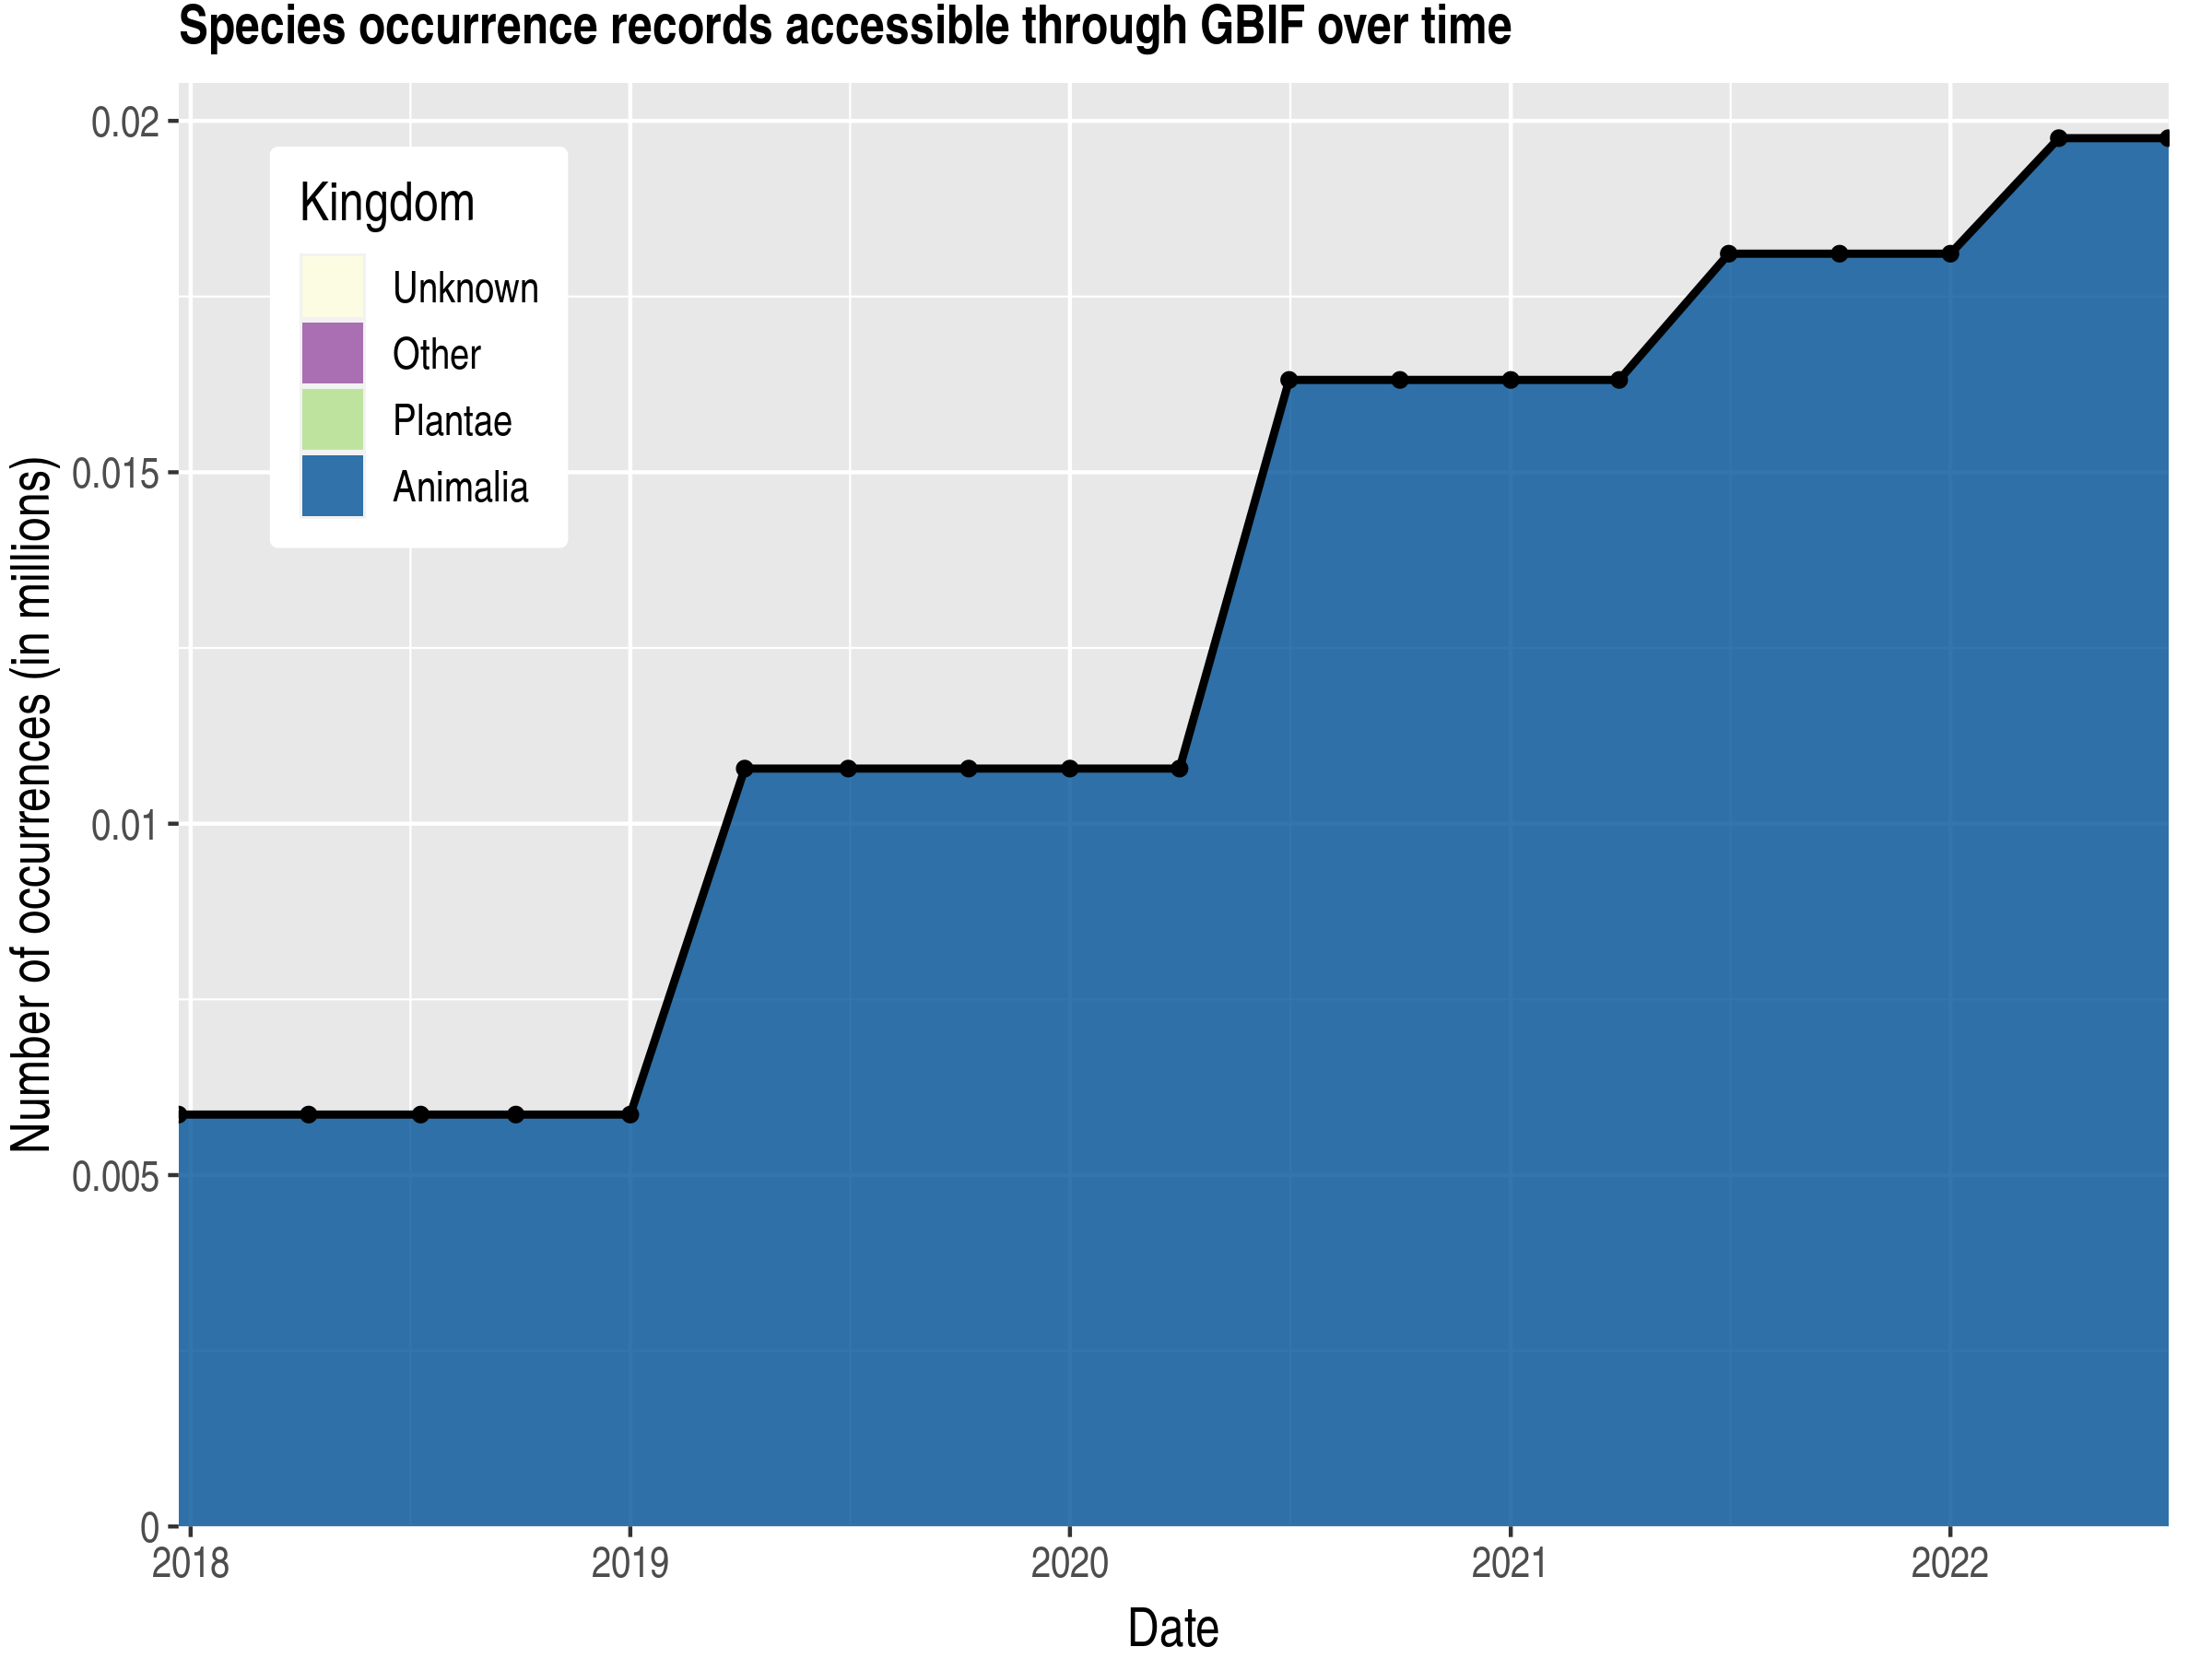 Data trend of records by kingdom published by Cape Verde